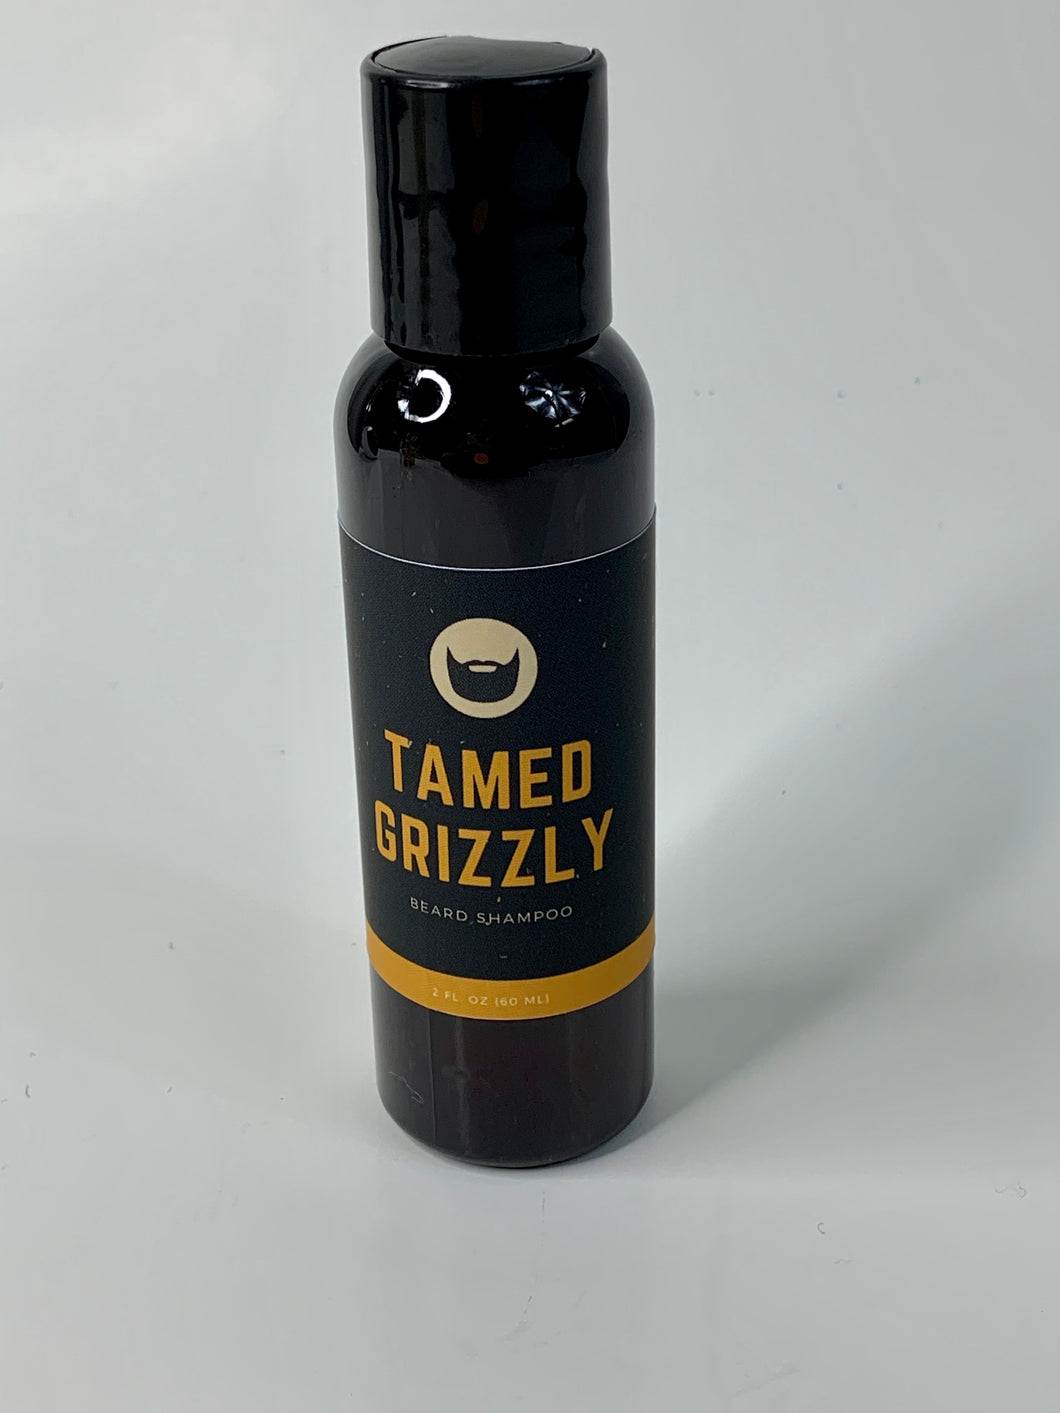 Tamed Grizzly Beard Shampoo